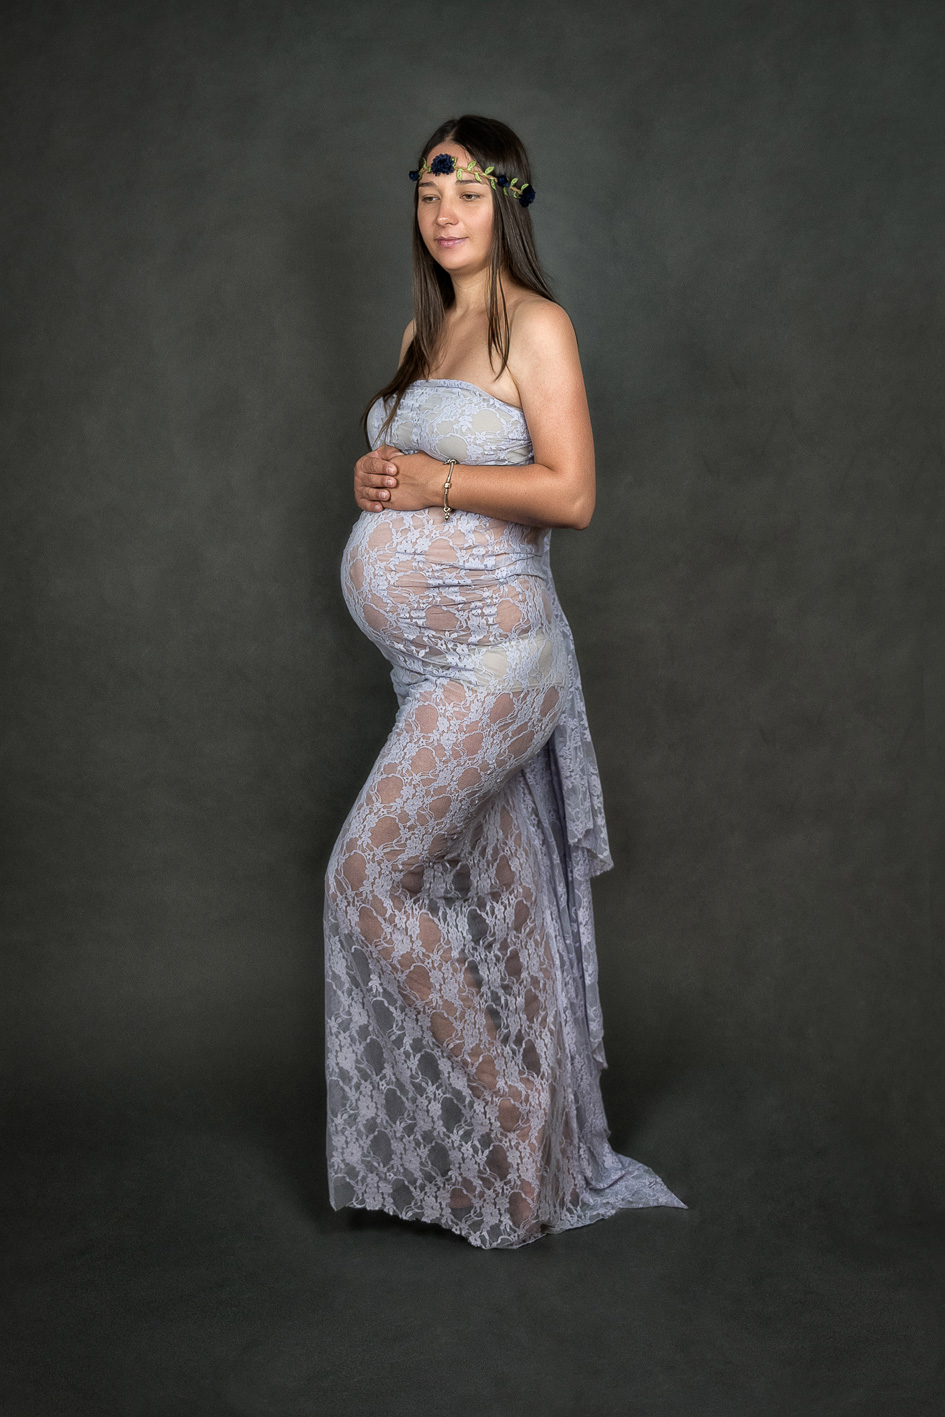 maternity-tagg-photography-48